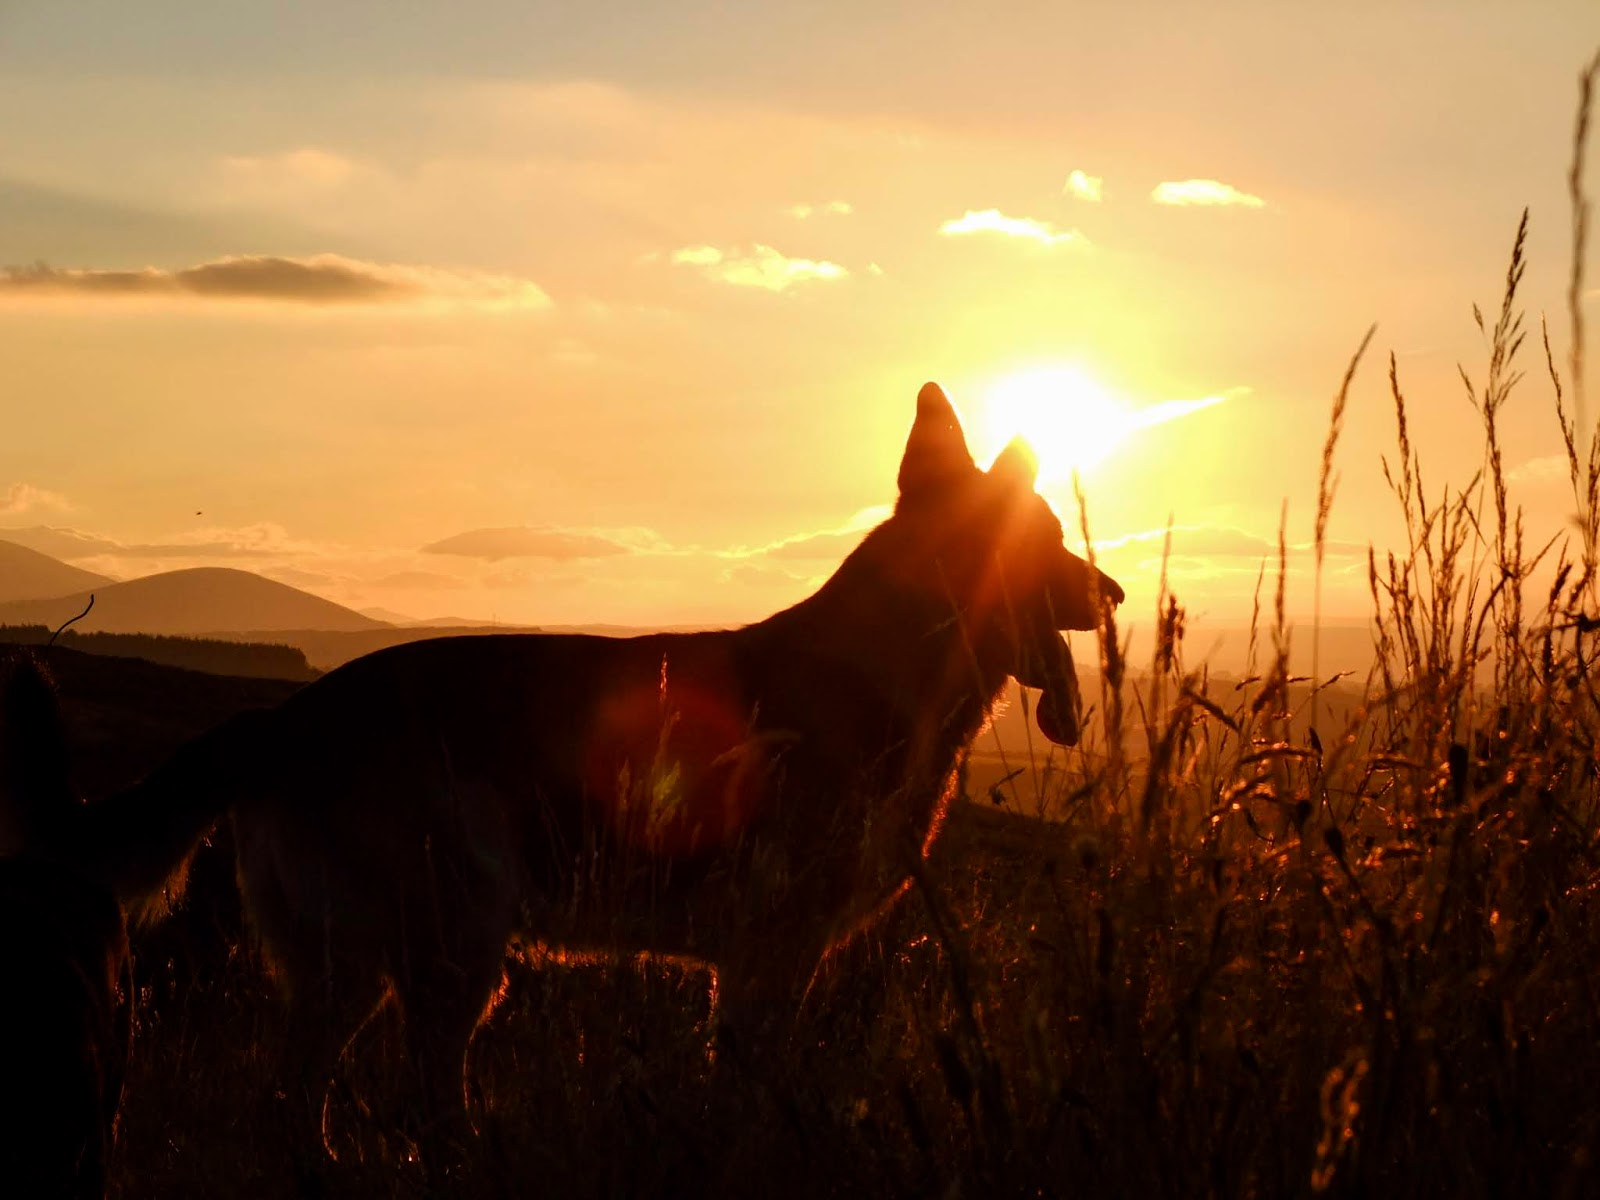 A German Shepherd silhouette with mountains in the distance at sunset.